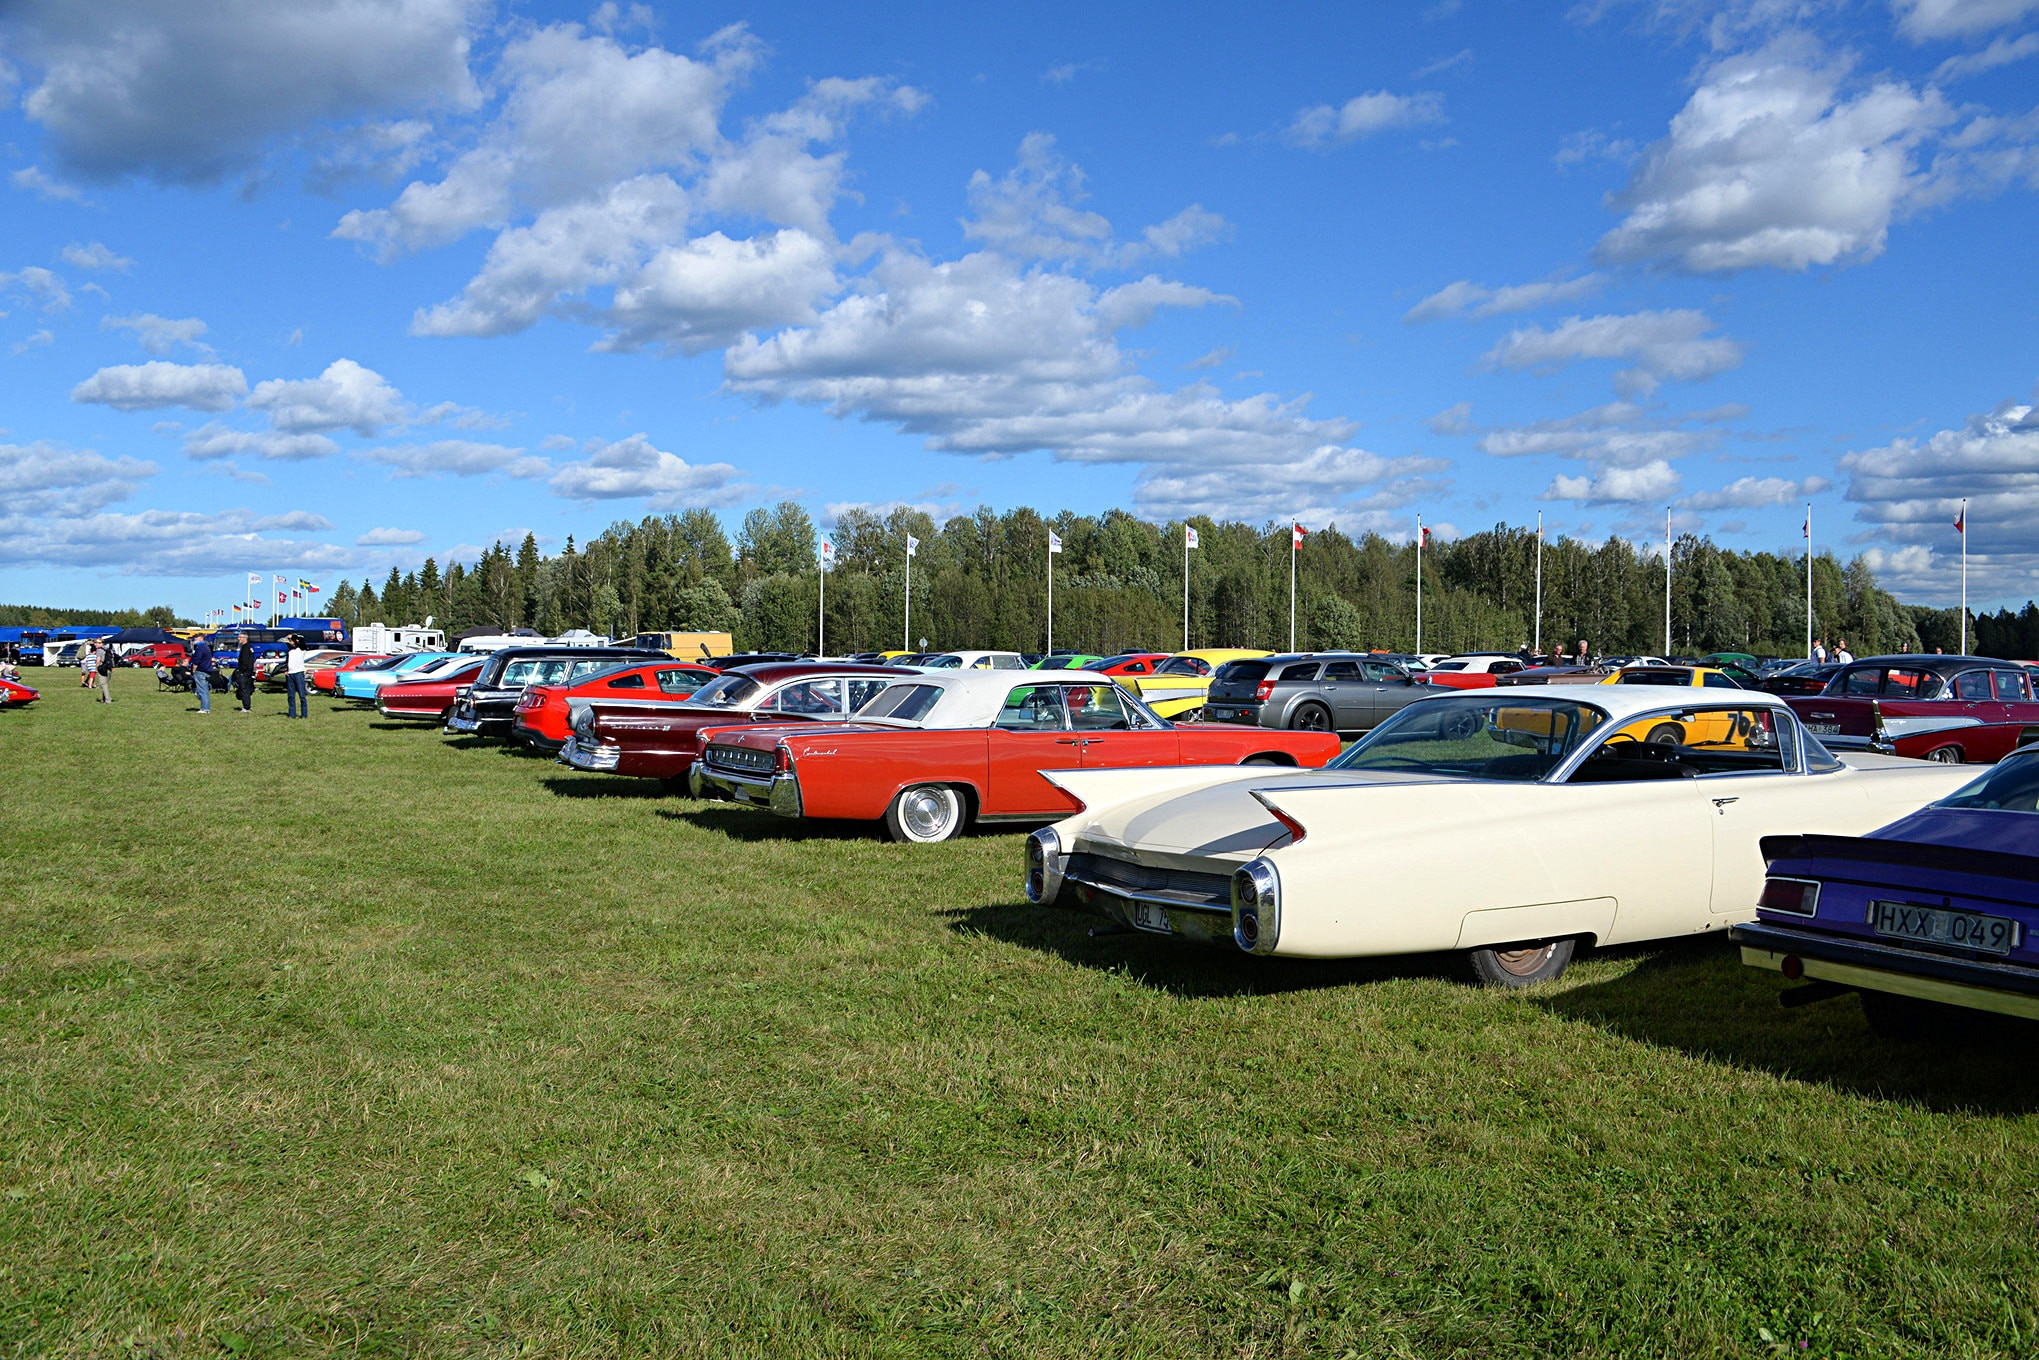 Ford Racing At Tierp In Sweden 40